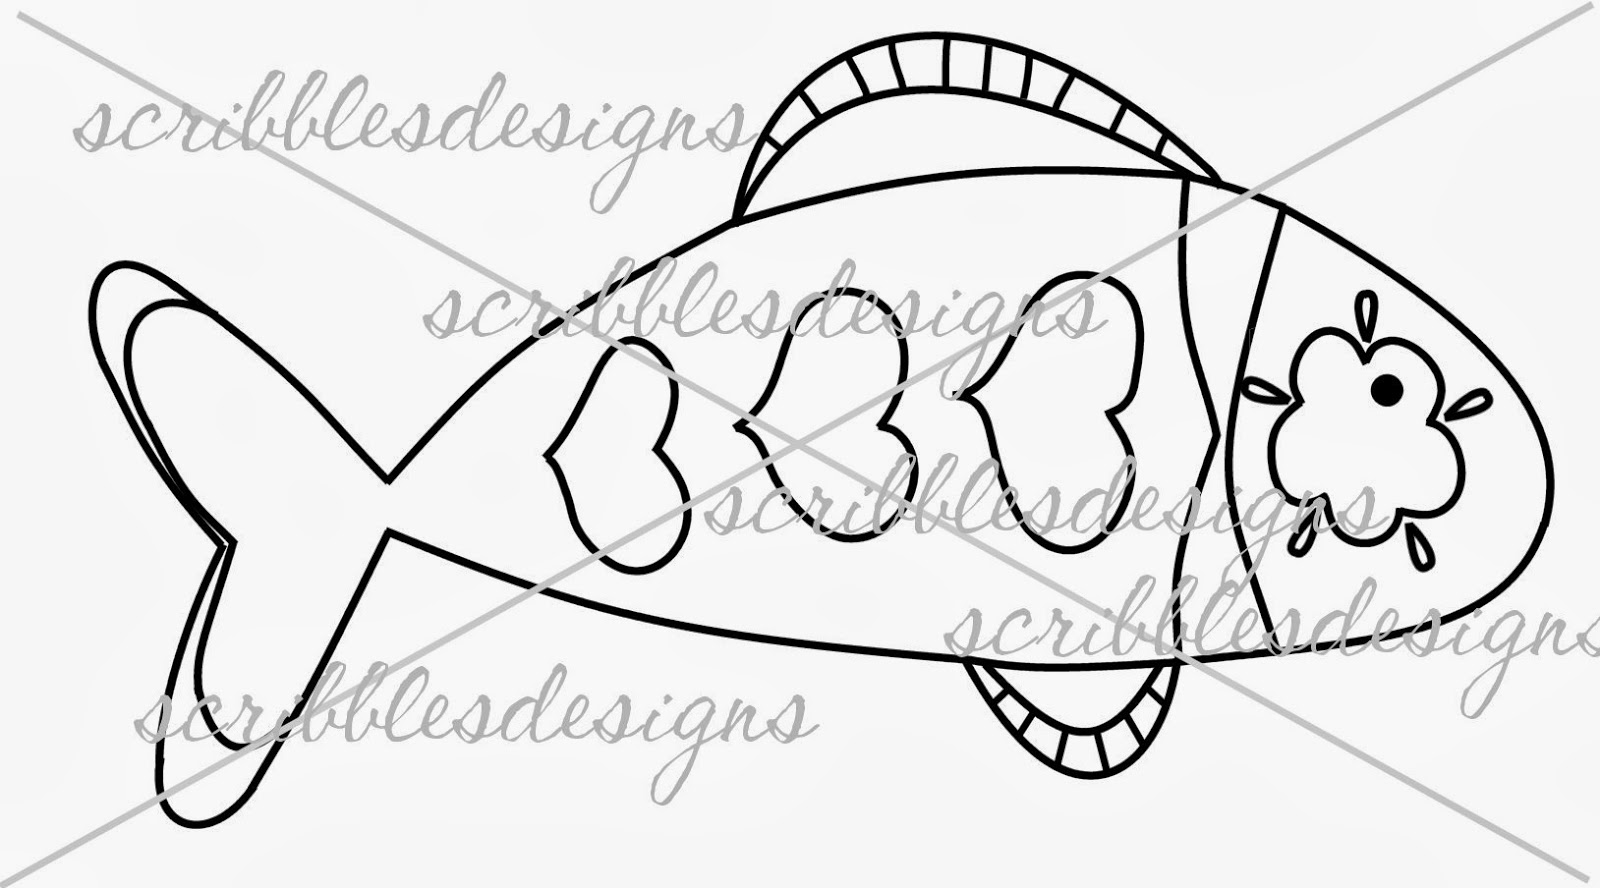 http://buyscribblesdesigns.blogspot.ca/2013/08/315-tropical-fish-4-200.html